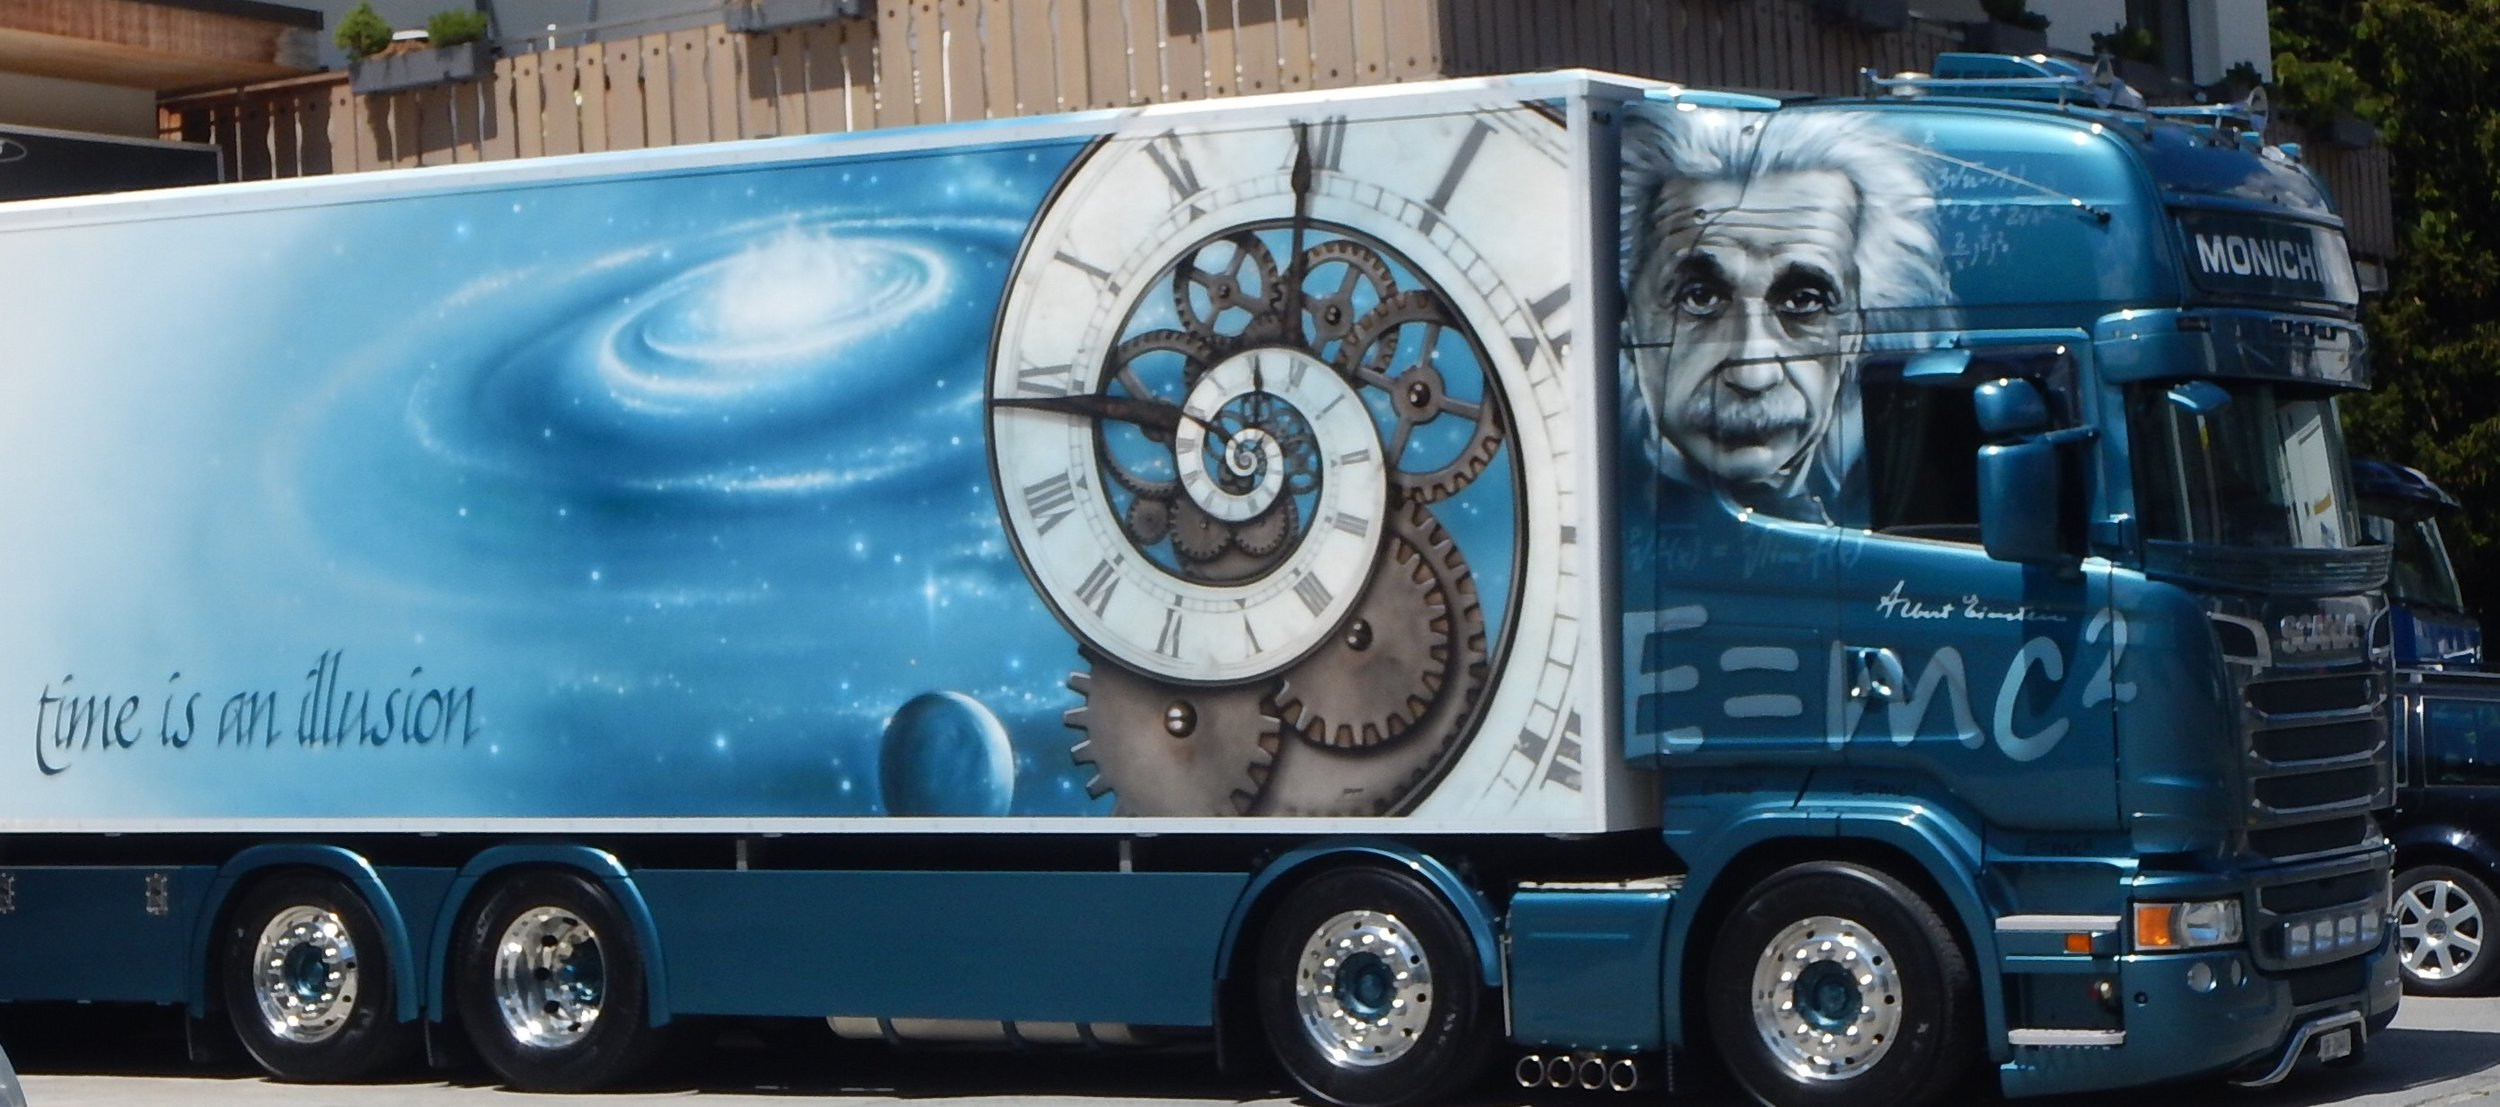 In town I ride past this truck. Good Ol' Fibonacci. Very timely that I should see this today.